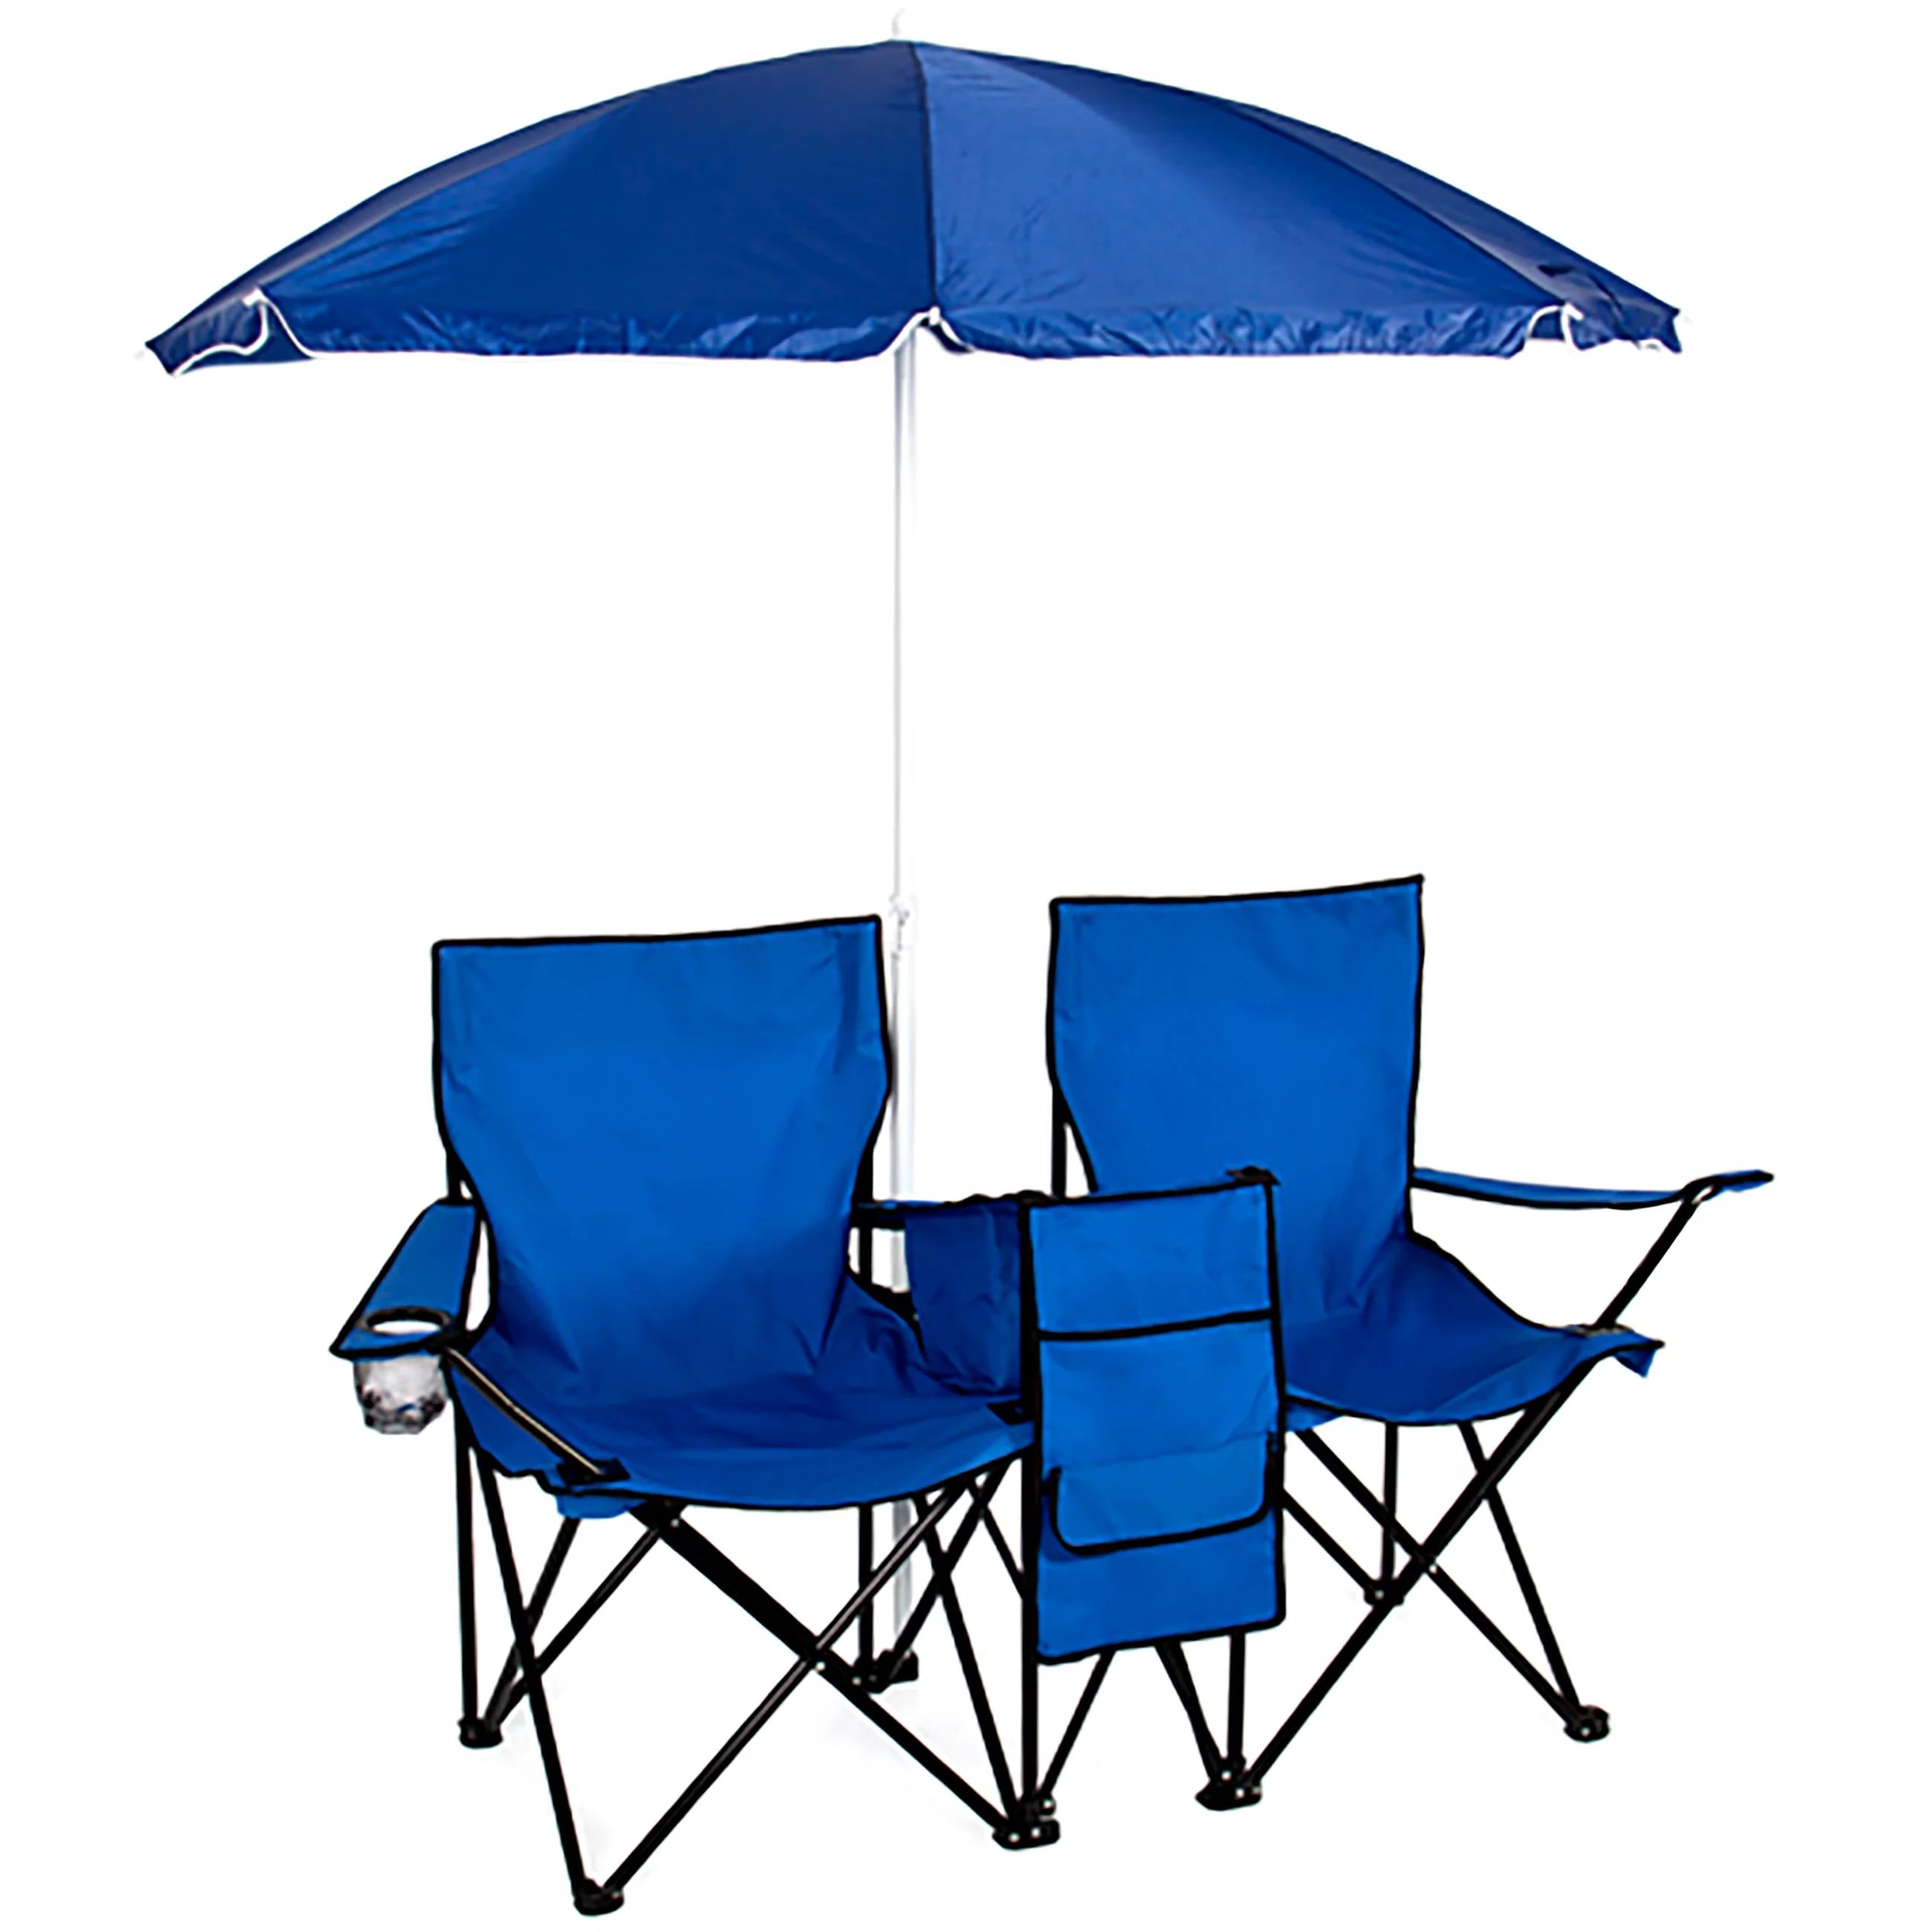 Picnic double folding chair w umbrella table cooler fold up beach camping chair walmart com